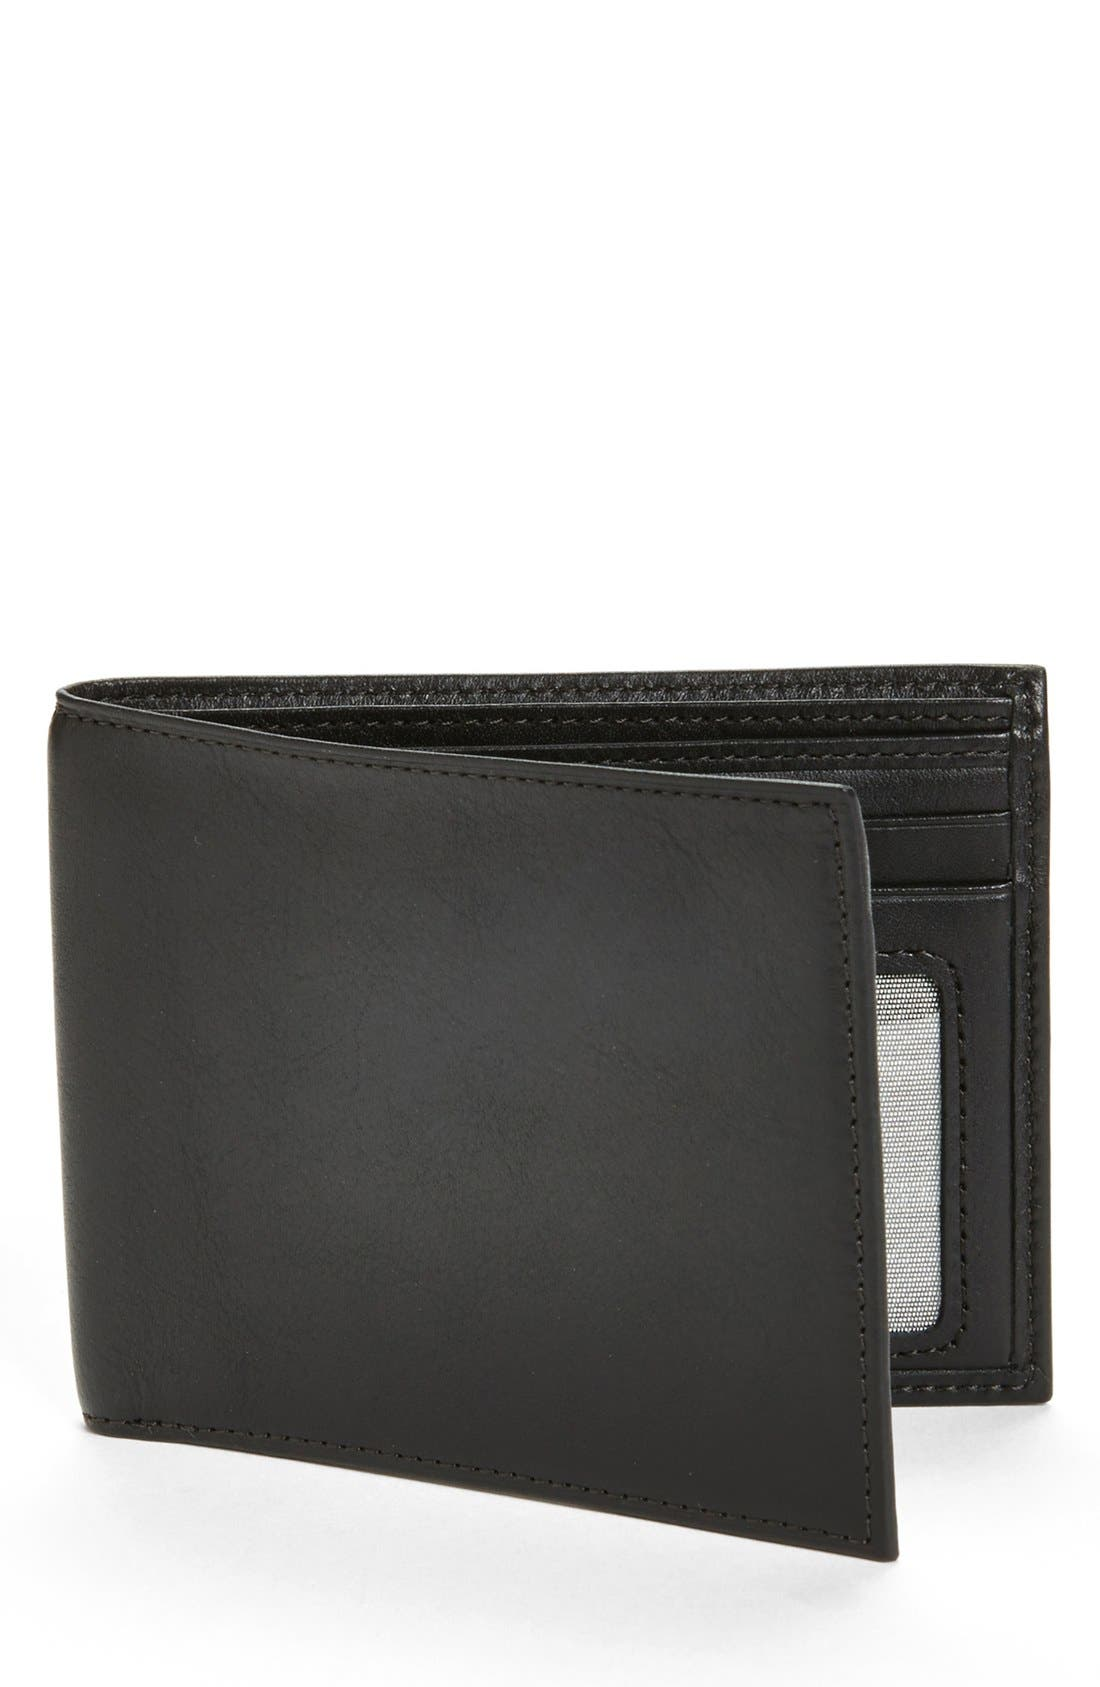 Main Image - Bosca 'Executive ID' Nappa Leather Wallet